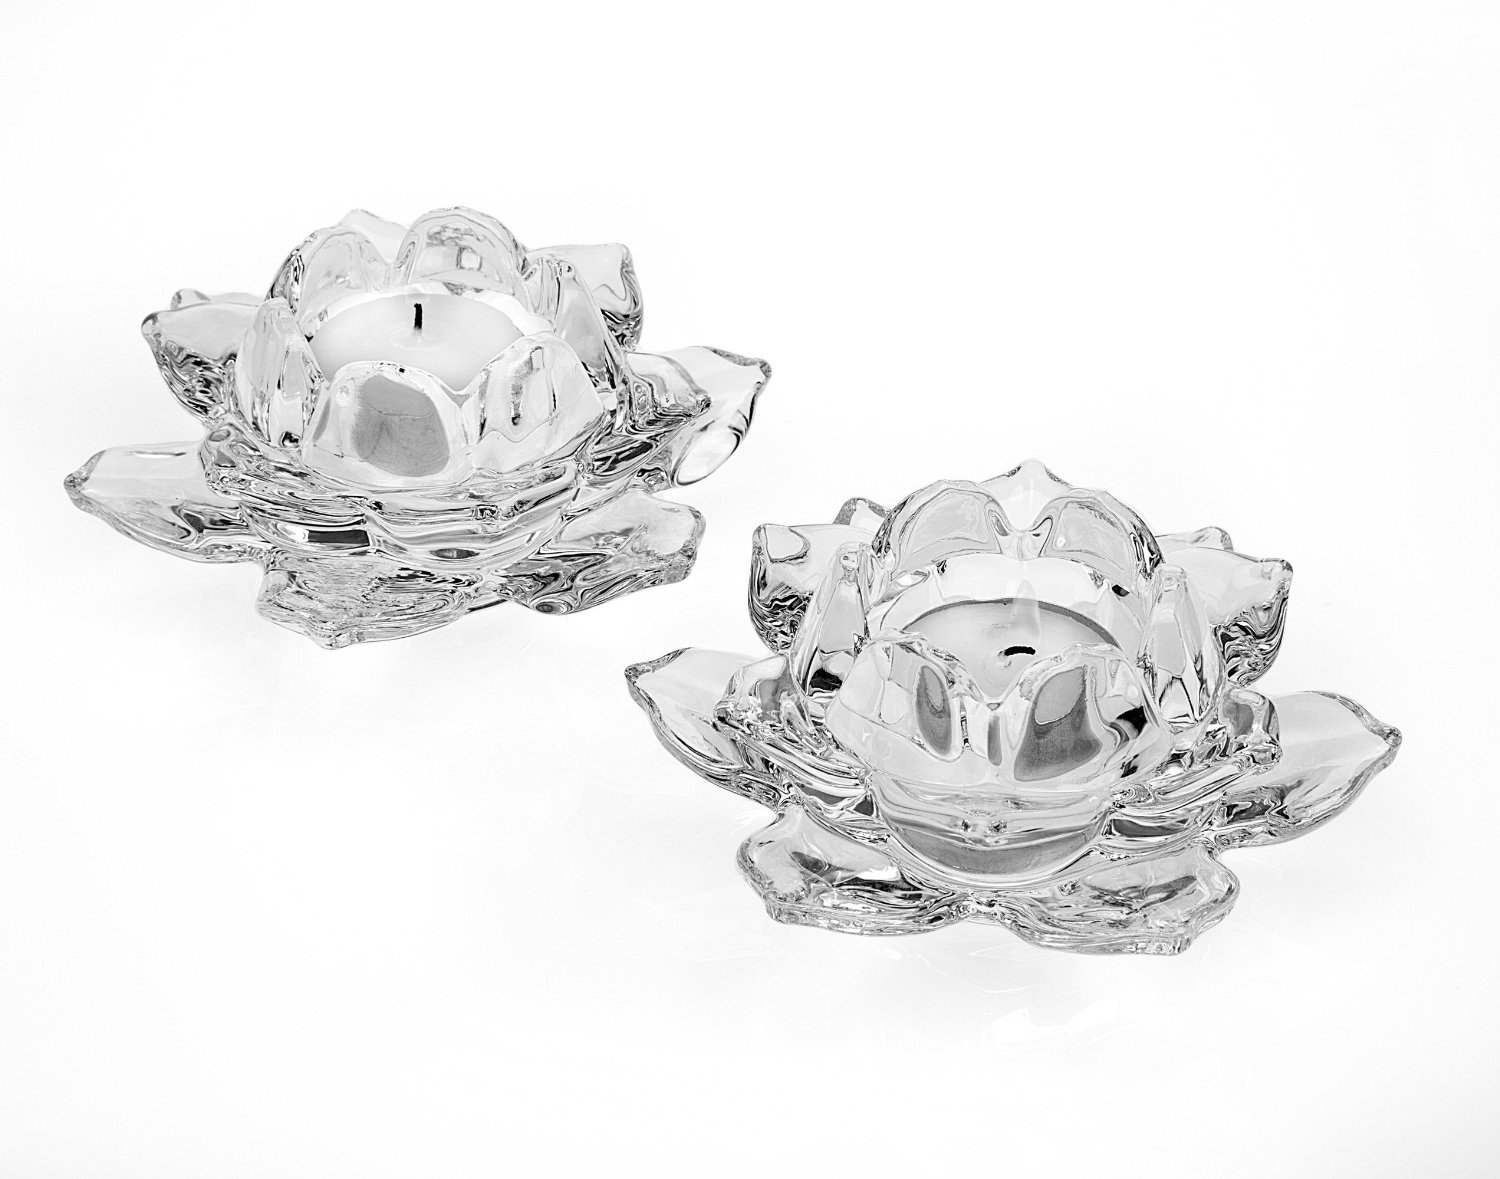 """Elegant Crystal 5"""" inch Votive Tealight Candle Holders, Set of 2, For Table, Buffet, Desk,Wedding, or Party,"""